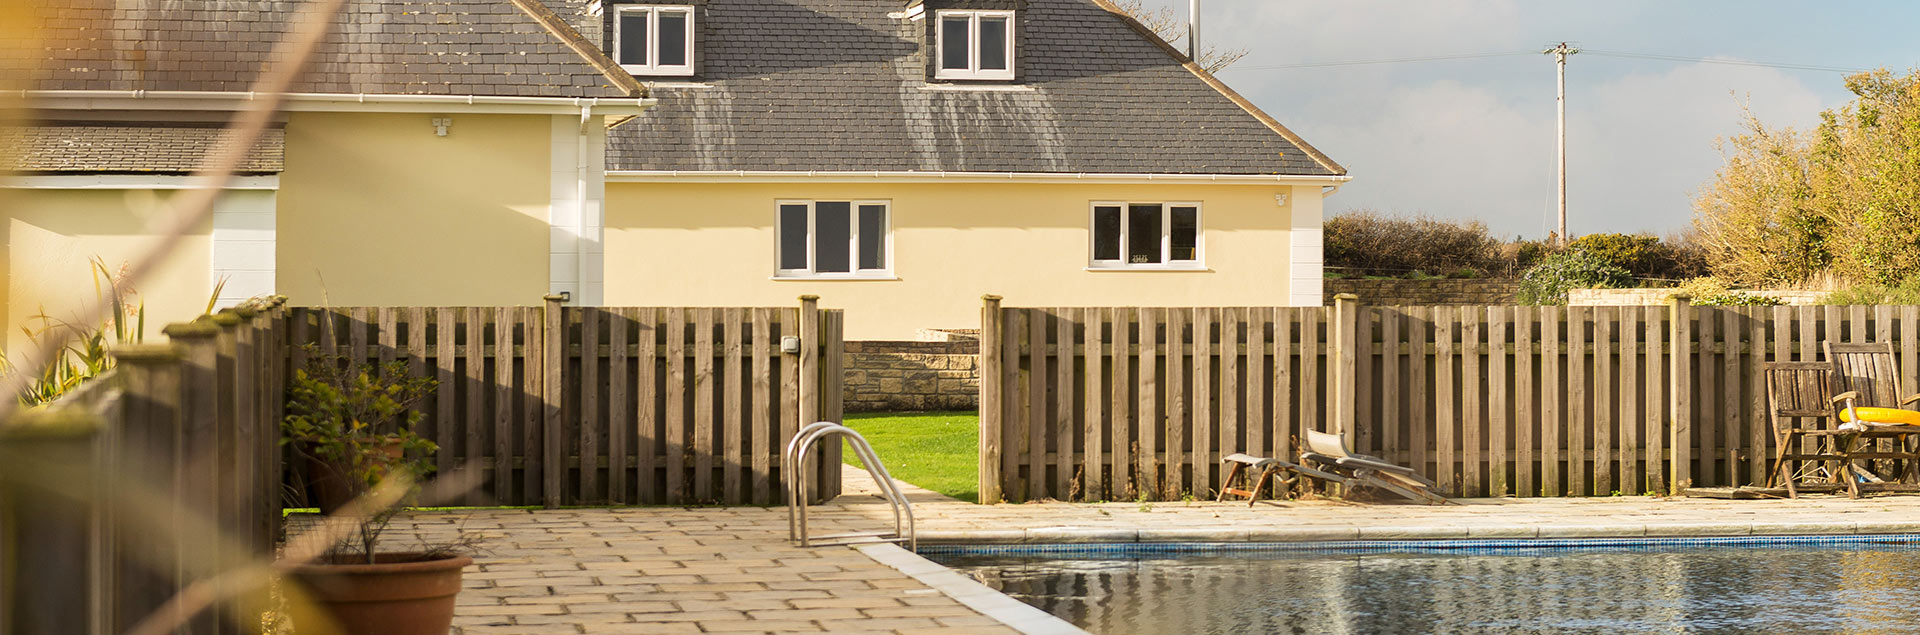 Notes Stories 4 Holiday Cottages With Swimming Pools For Easter